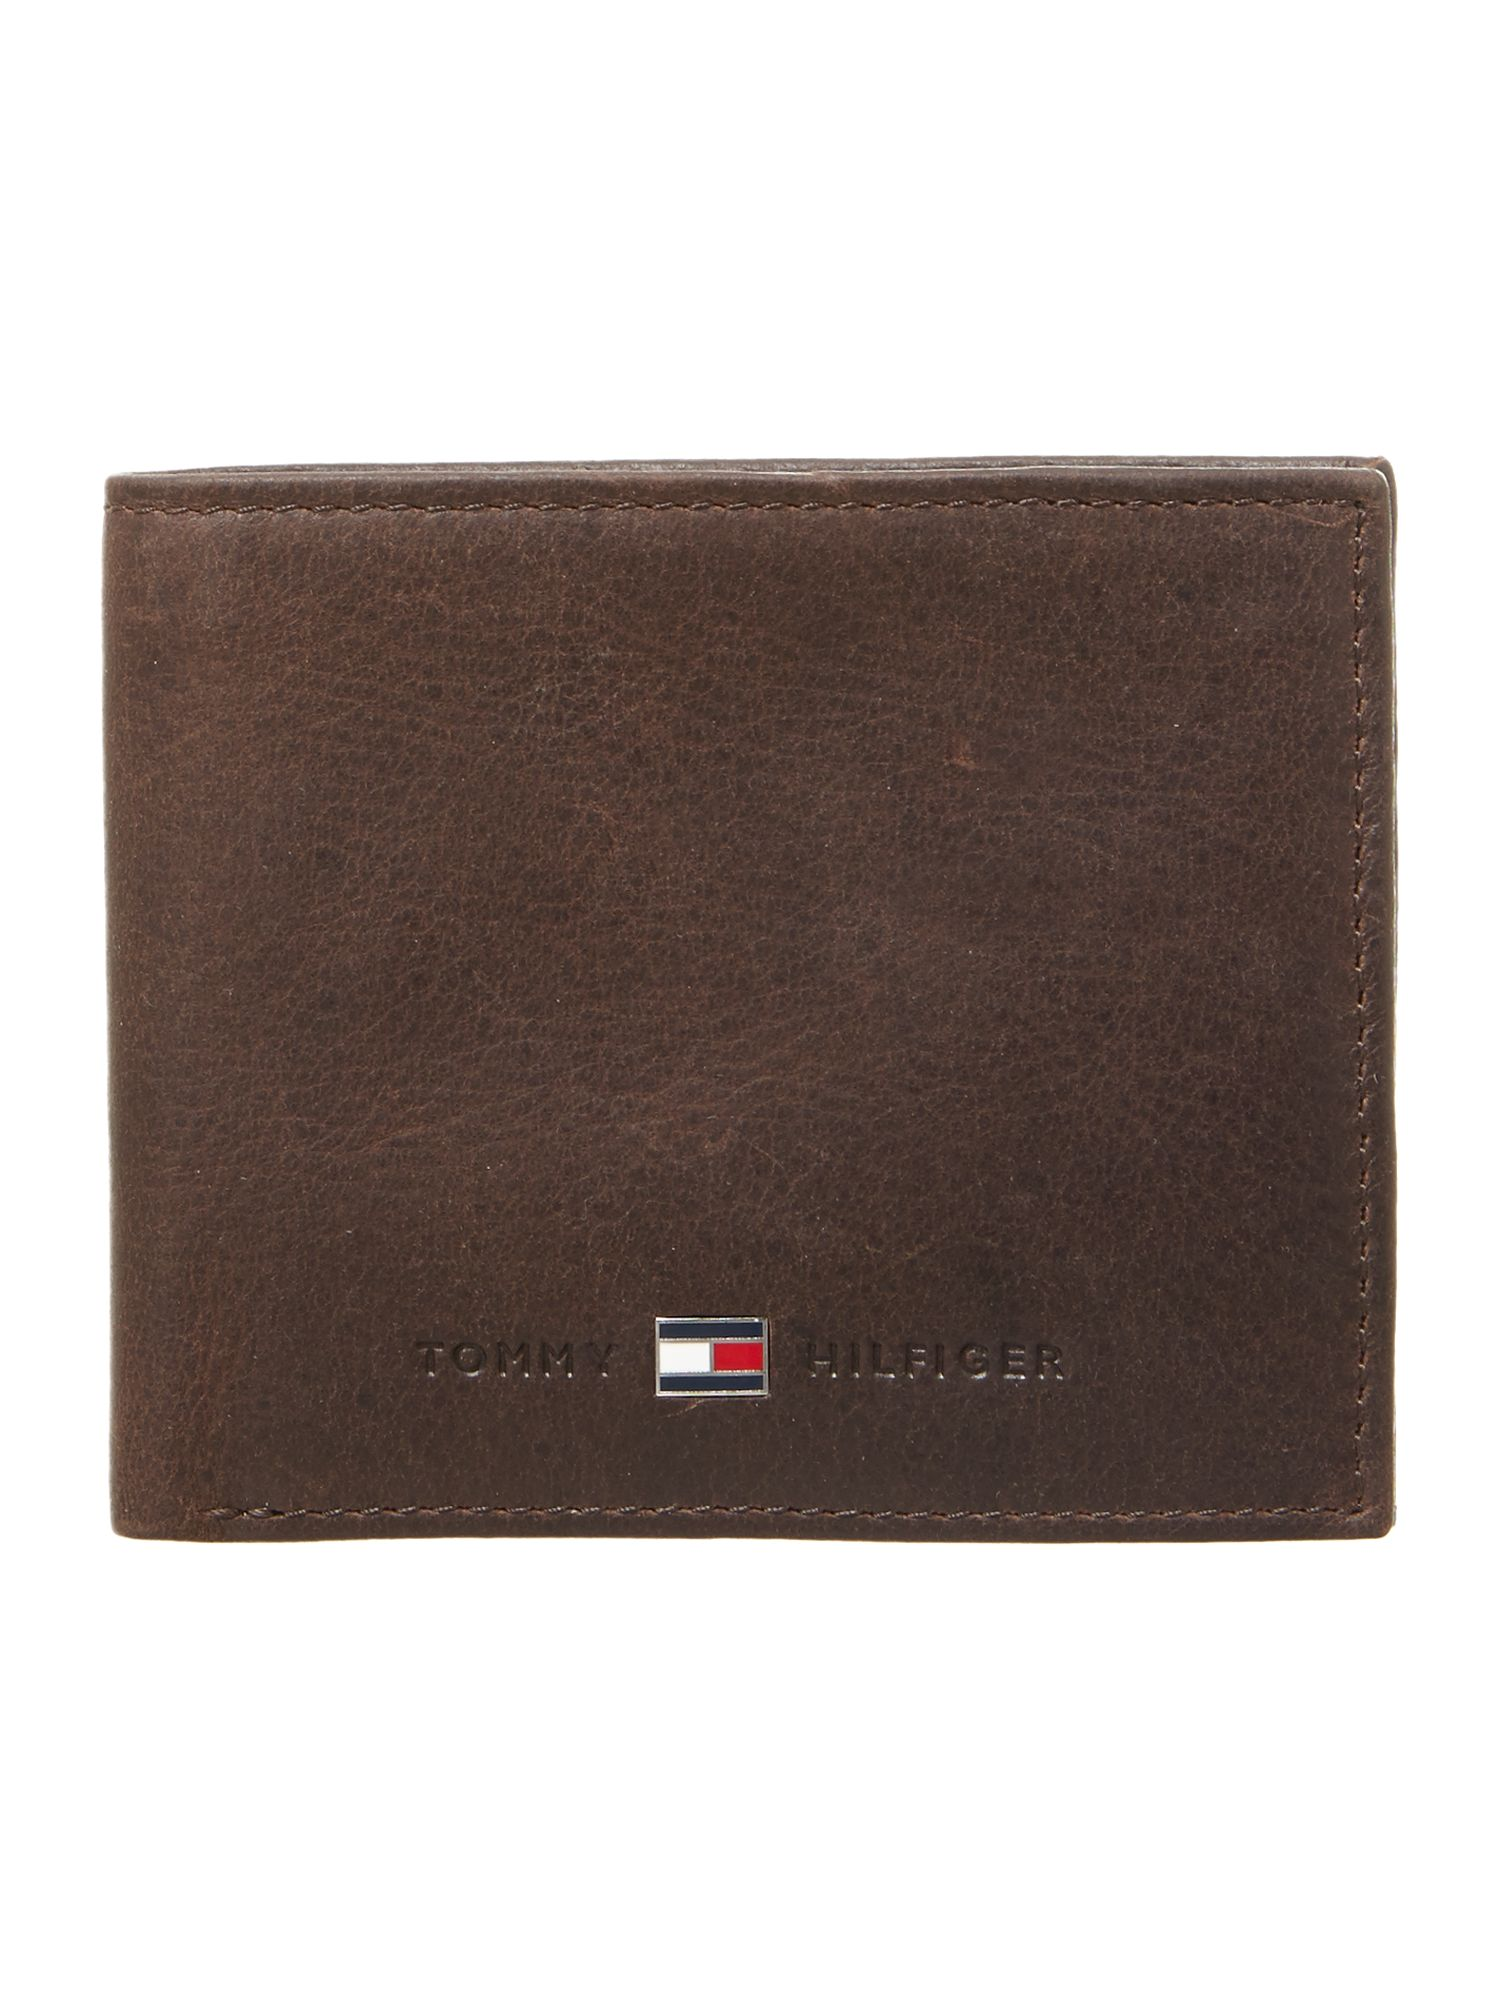 Johnson exclusive billfold wallet